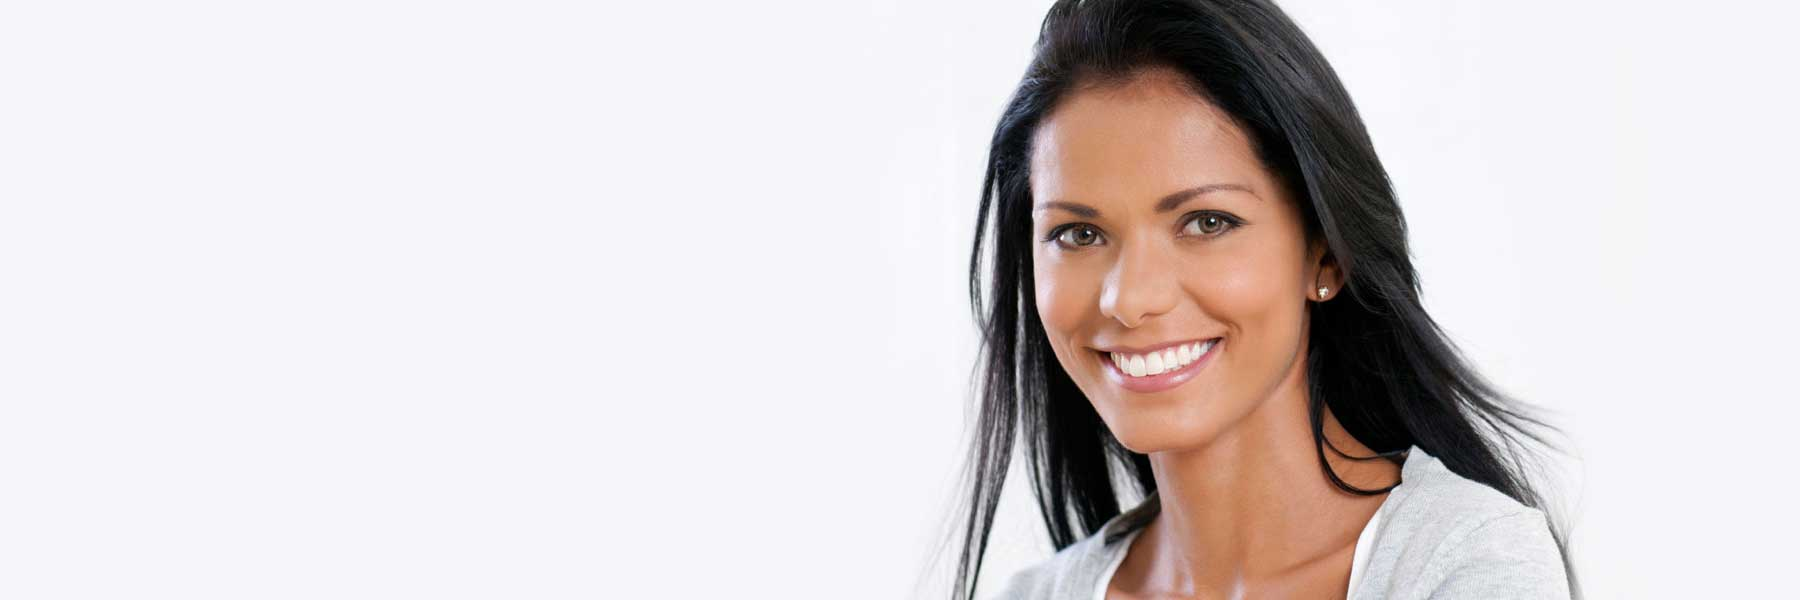 Cosmetic Dental Services | Dentist